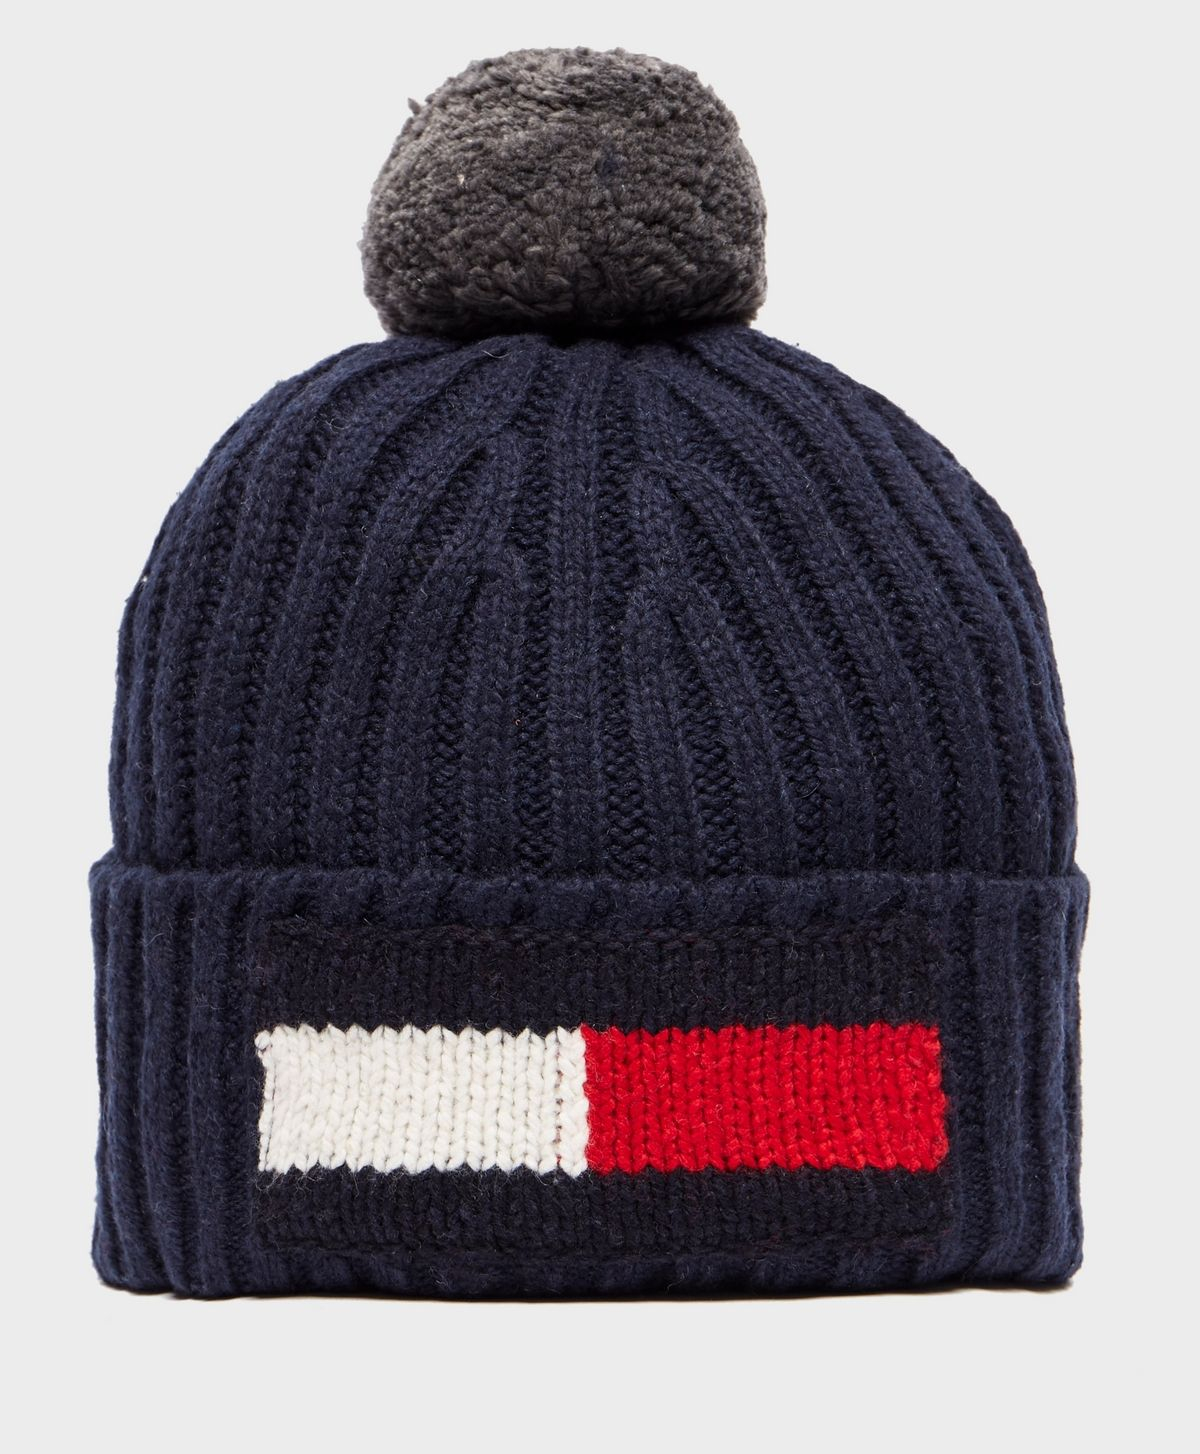 38e03848b30 Tommy Hilfiger Flag Bobble Hat in 2018